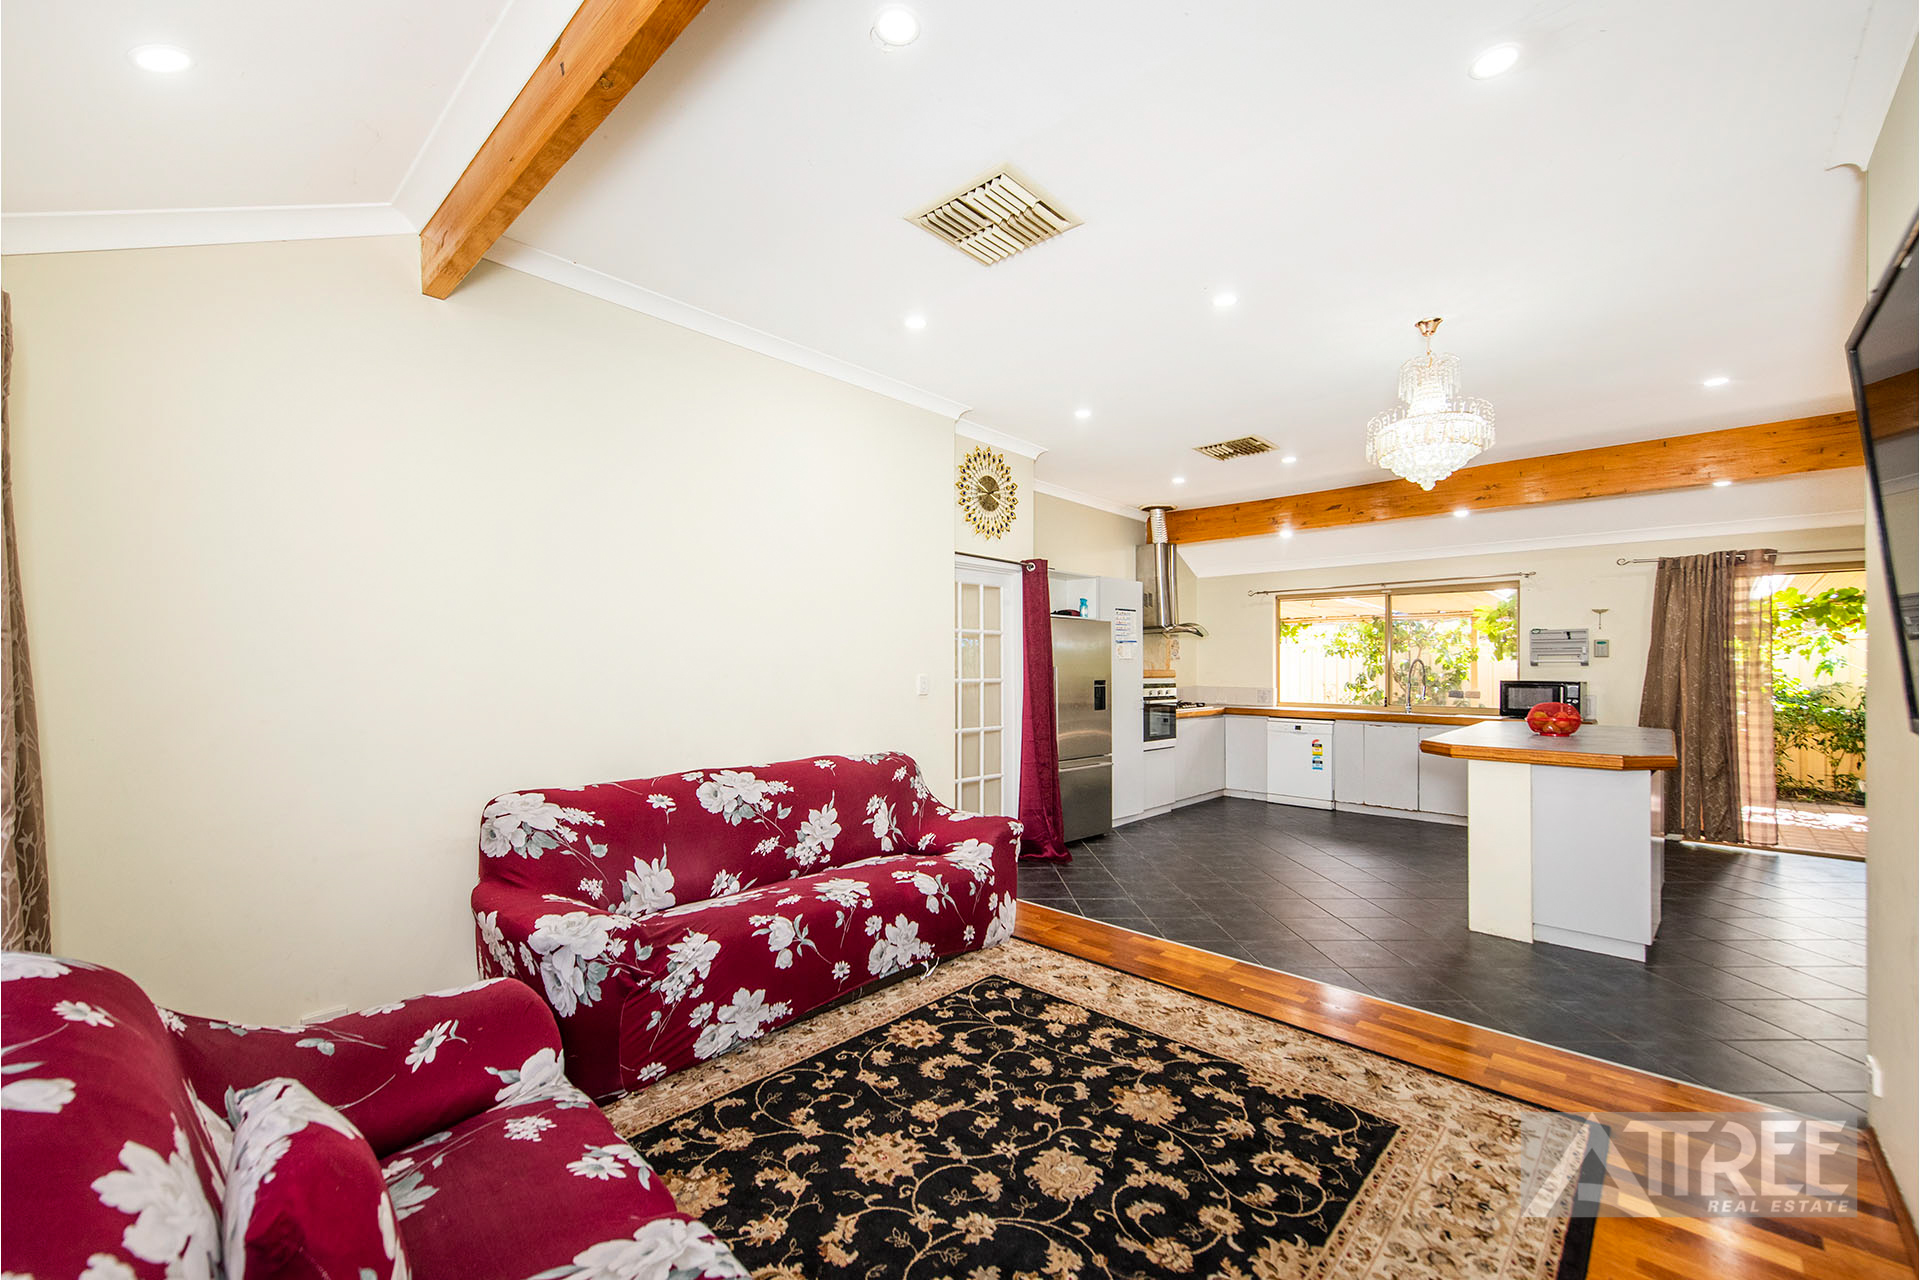 Property for sale in HUNTINGDALE, 108 Gay Street : Attree Real Estate